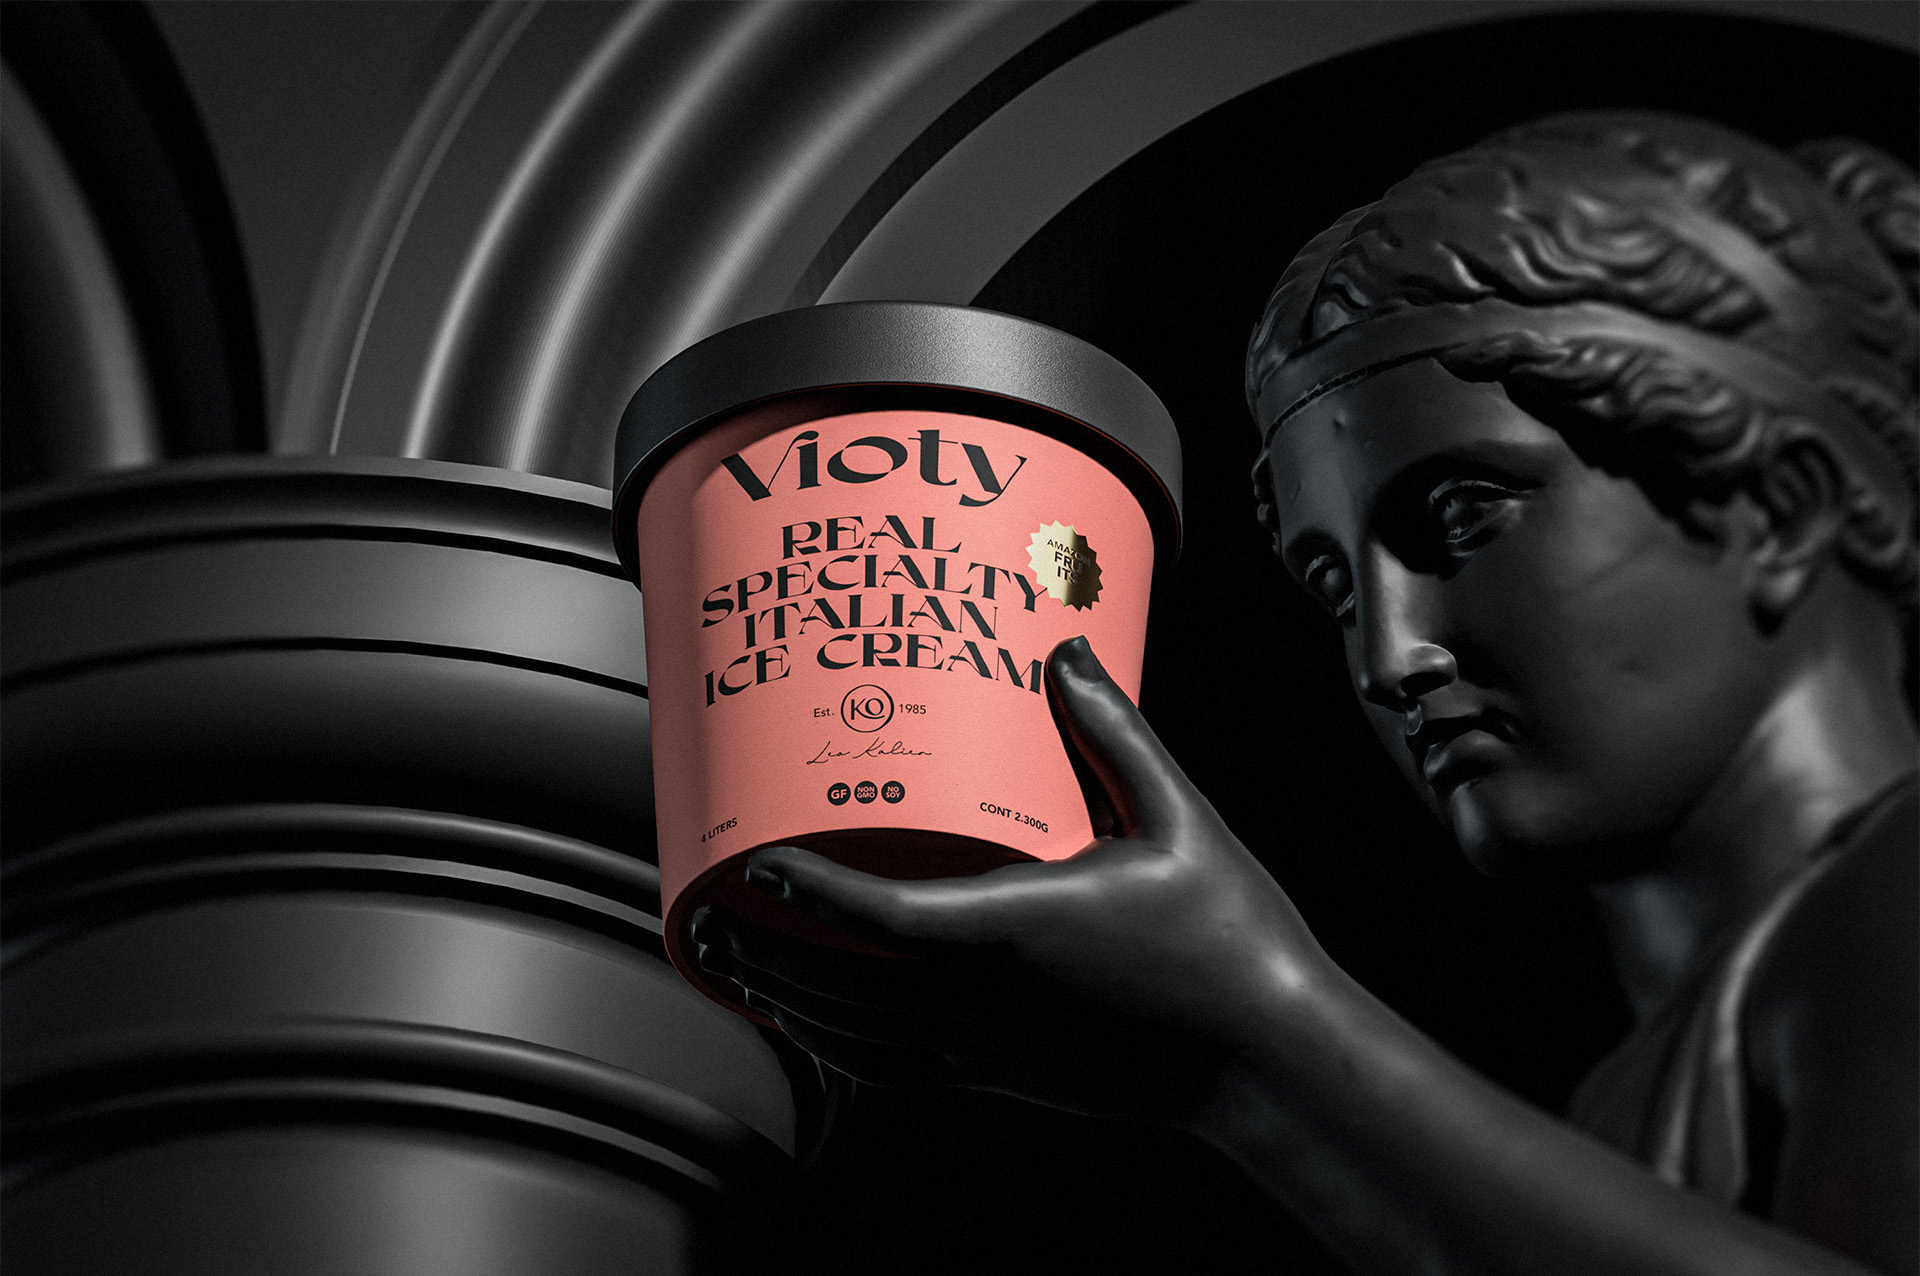 Vioty Ice Cream Packaging Design Created by David Espinosa